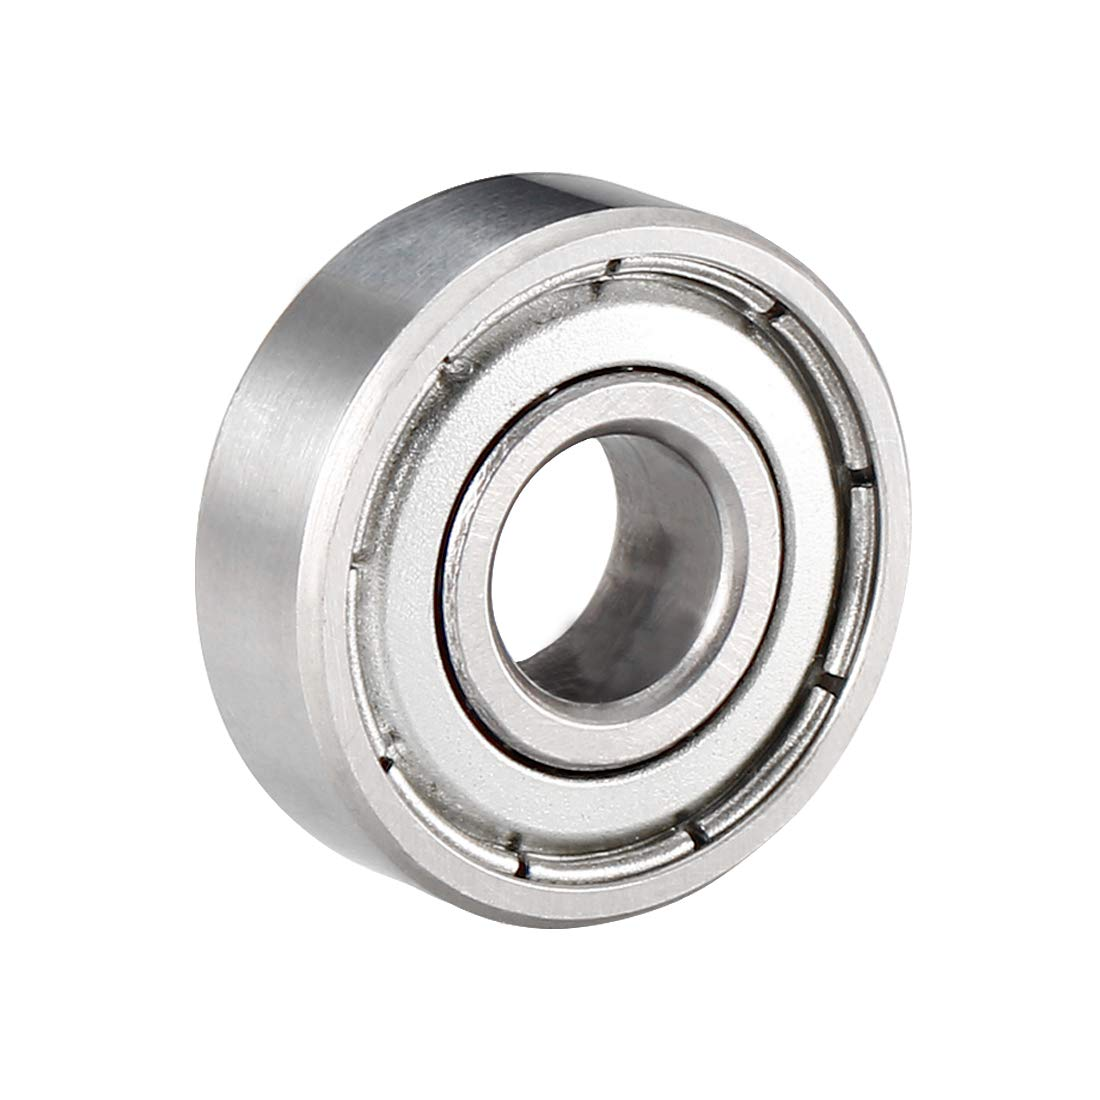 sourcing map 604ZZ Deep Groove Ball Bearing Double Shield 604-2Z 80014 4mm x 12mm x 4mm Carbon Steel Bearings Pack of 10